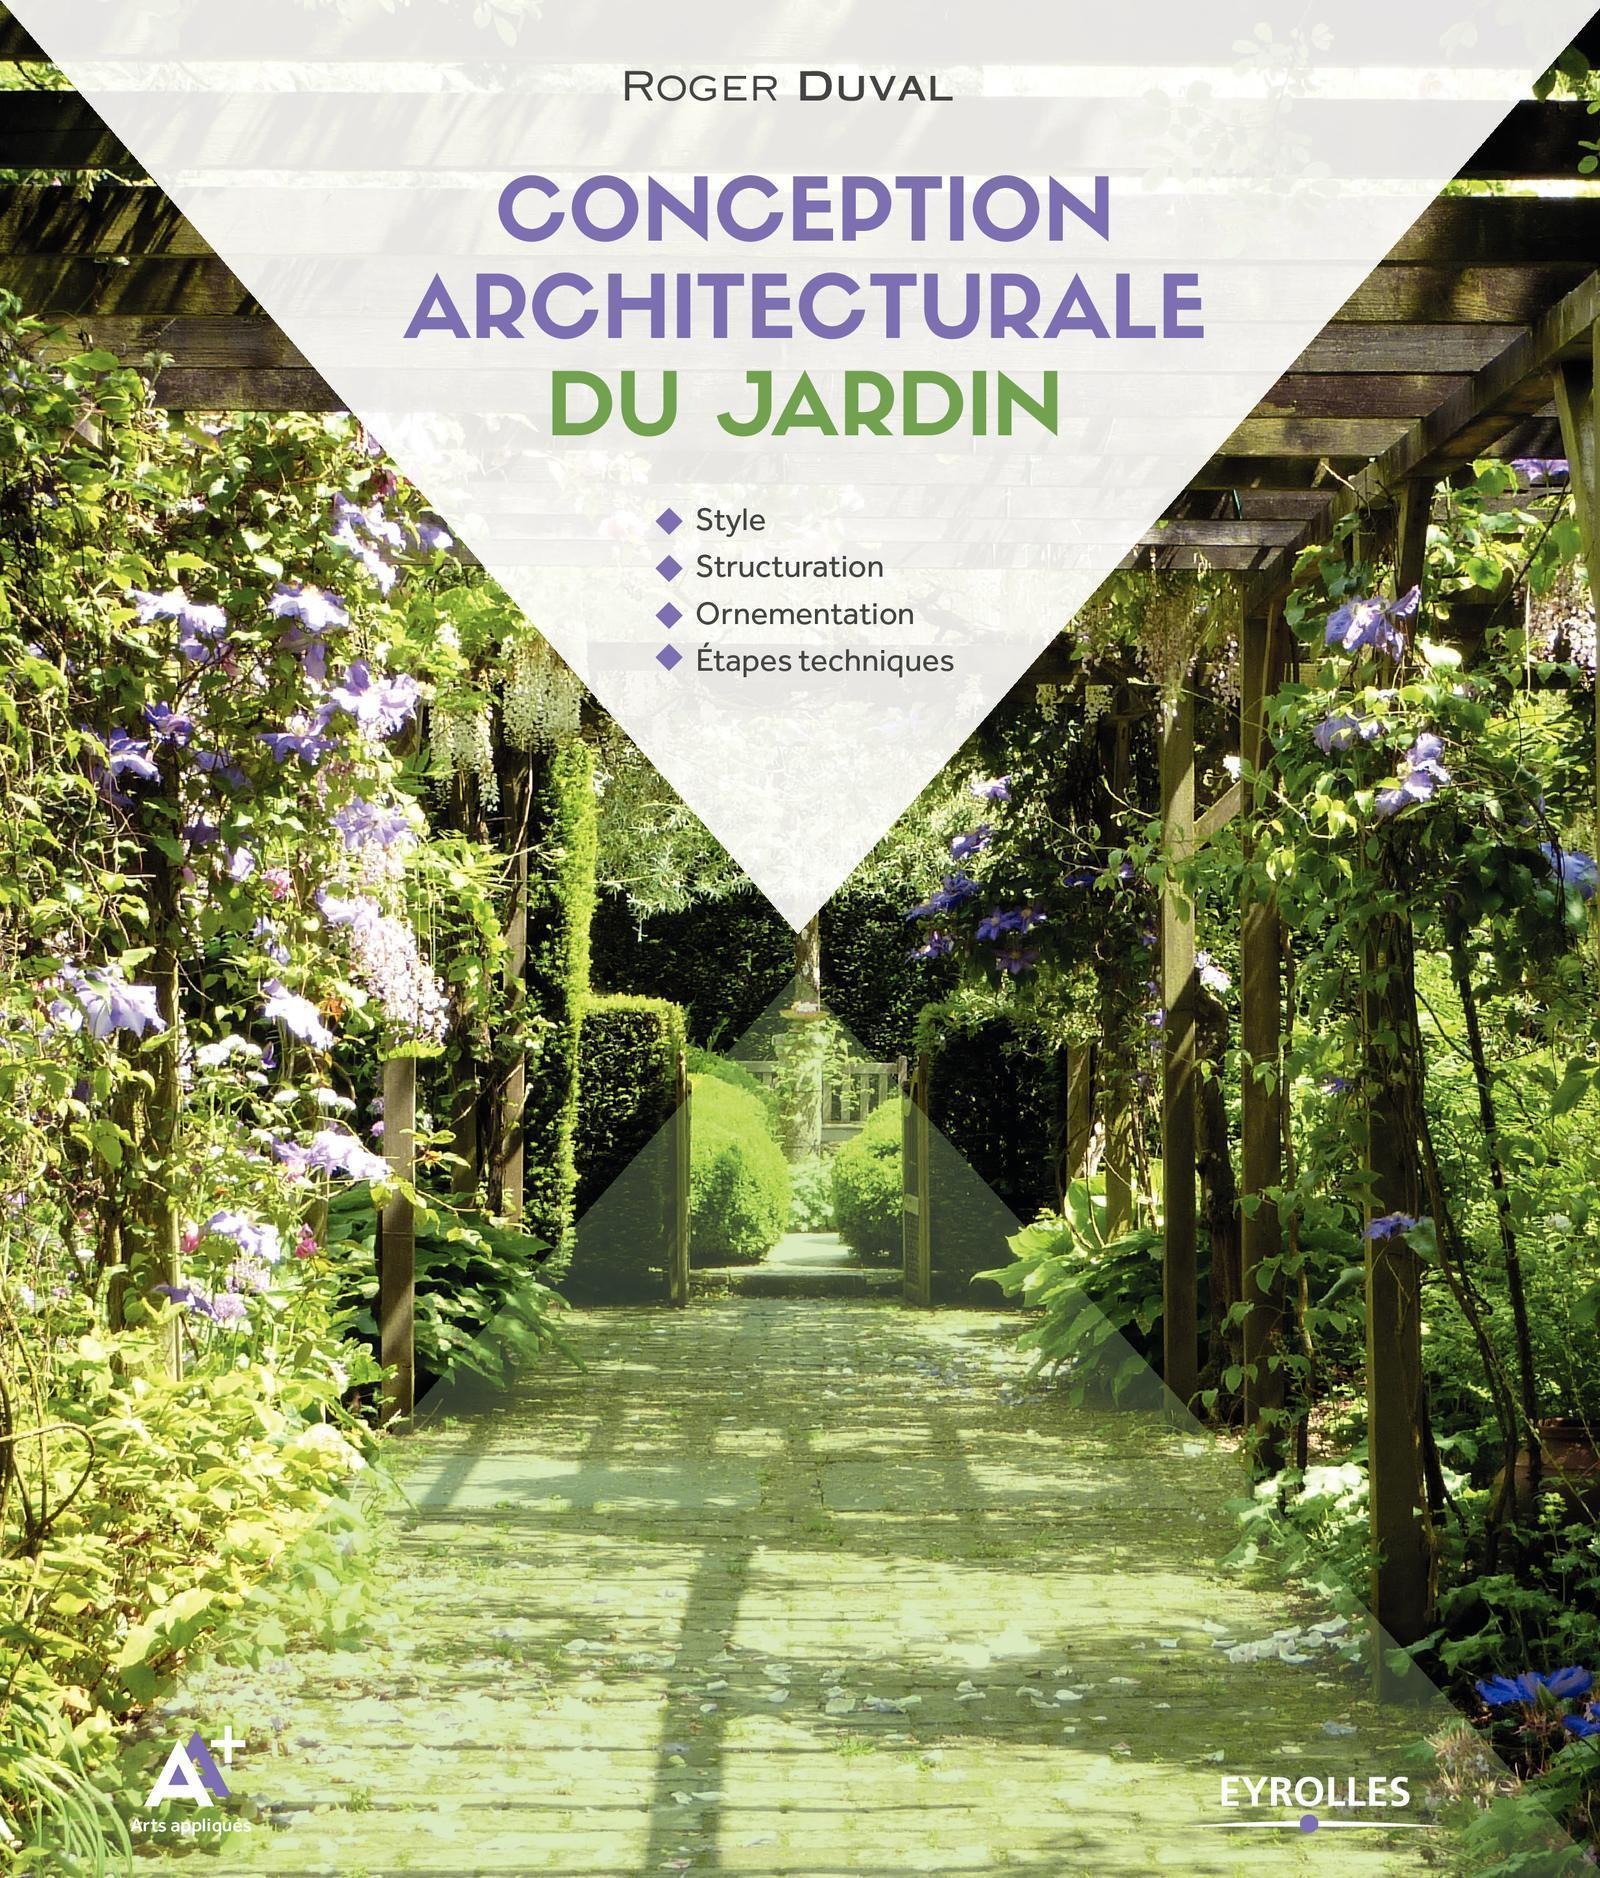 CONCEPTION ARCHITECTURALE DU JARDIN  STYLE  STRUCTURATION  ORNEMENTATION  ETAPE